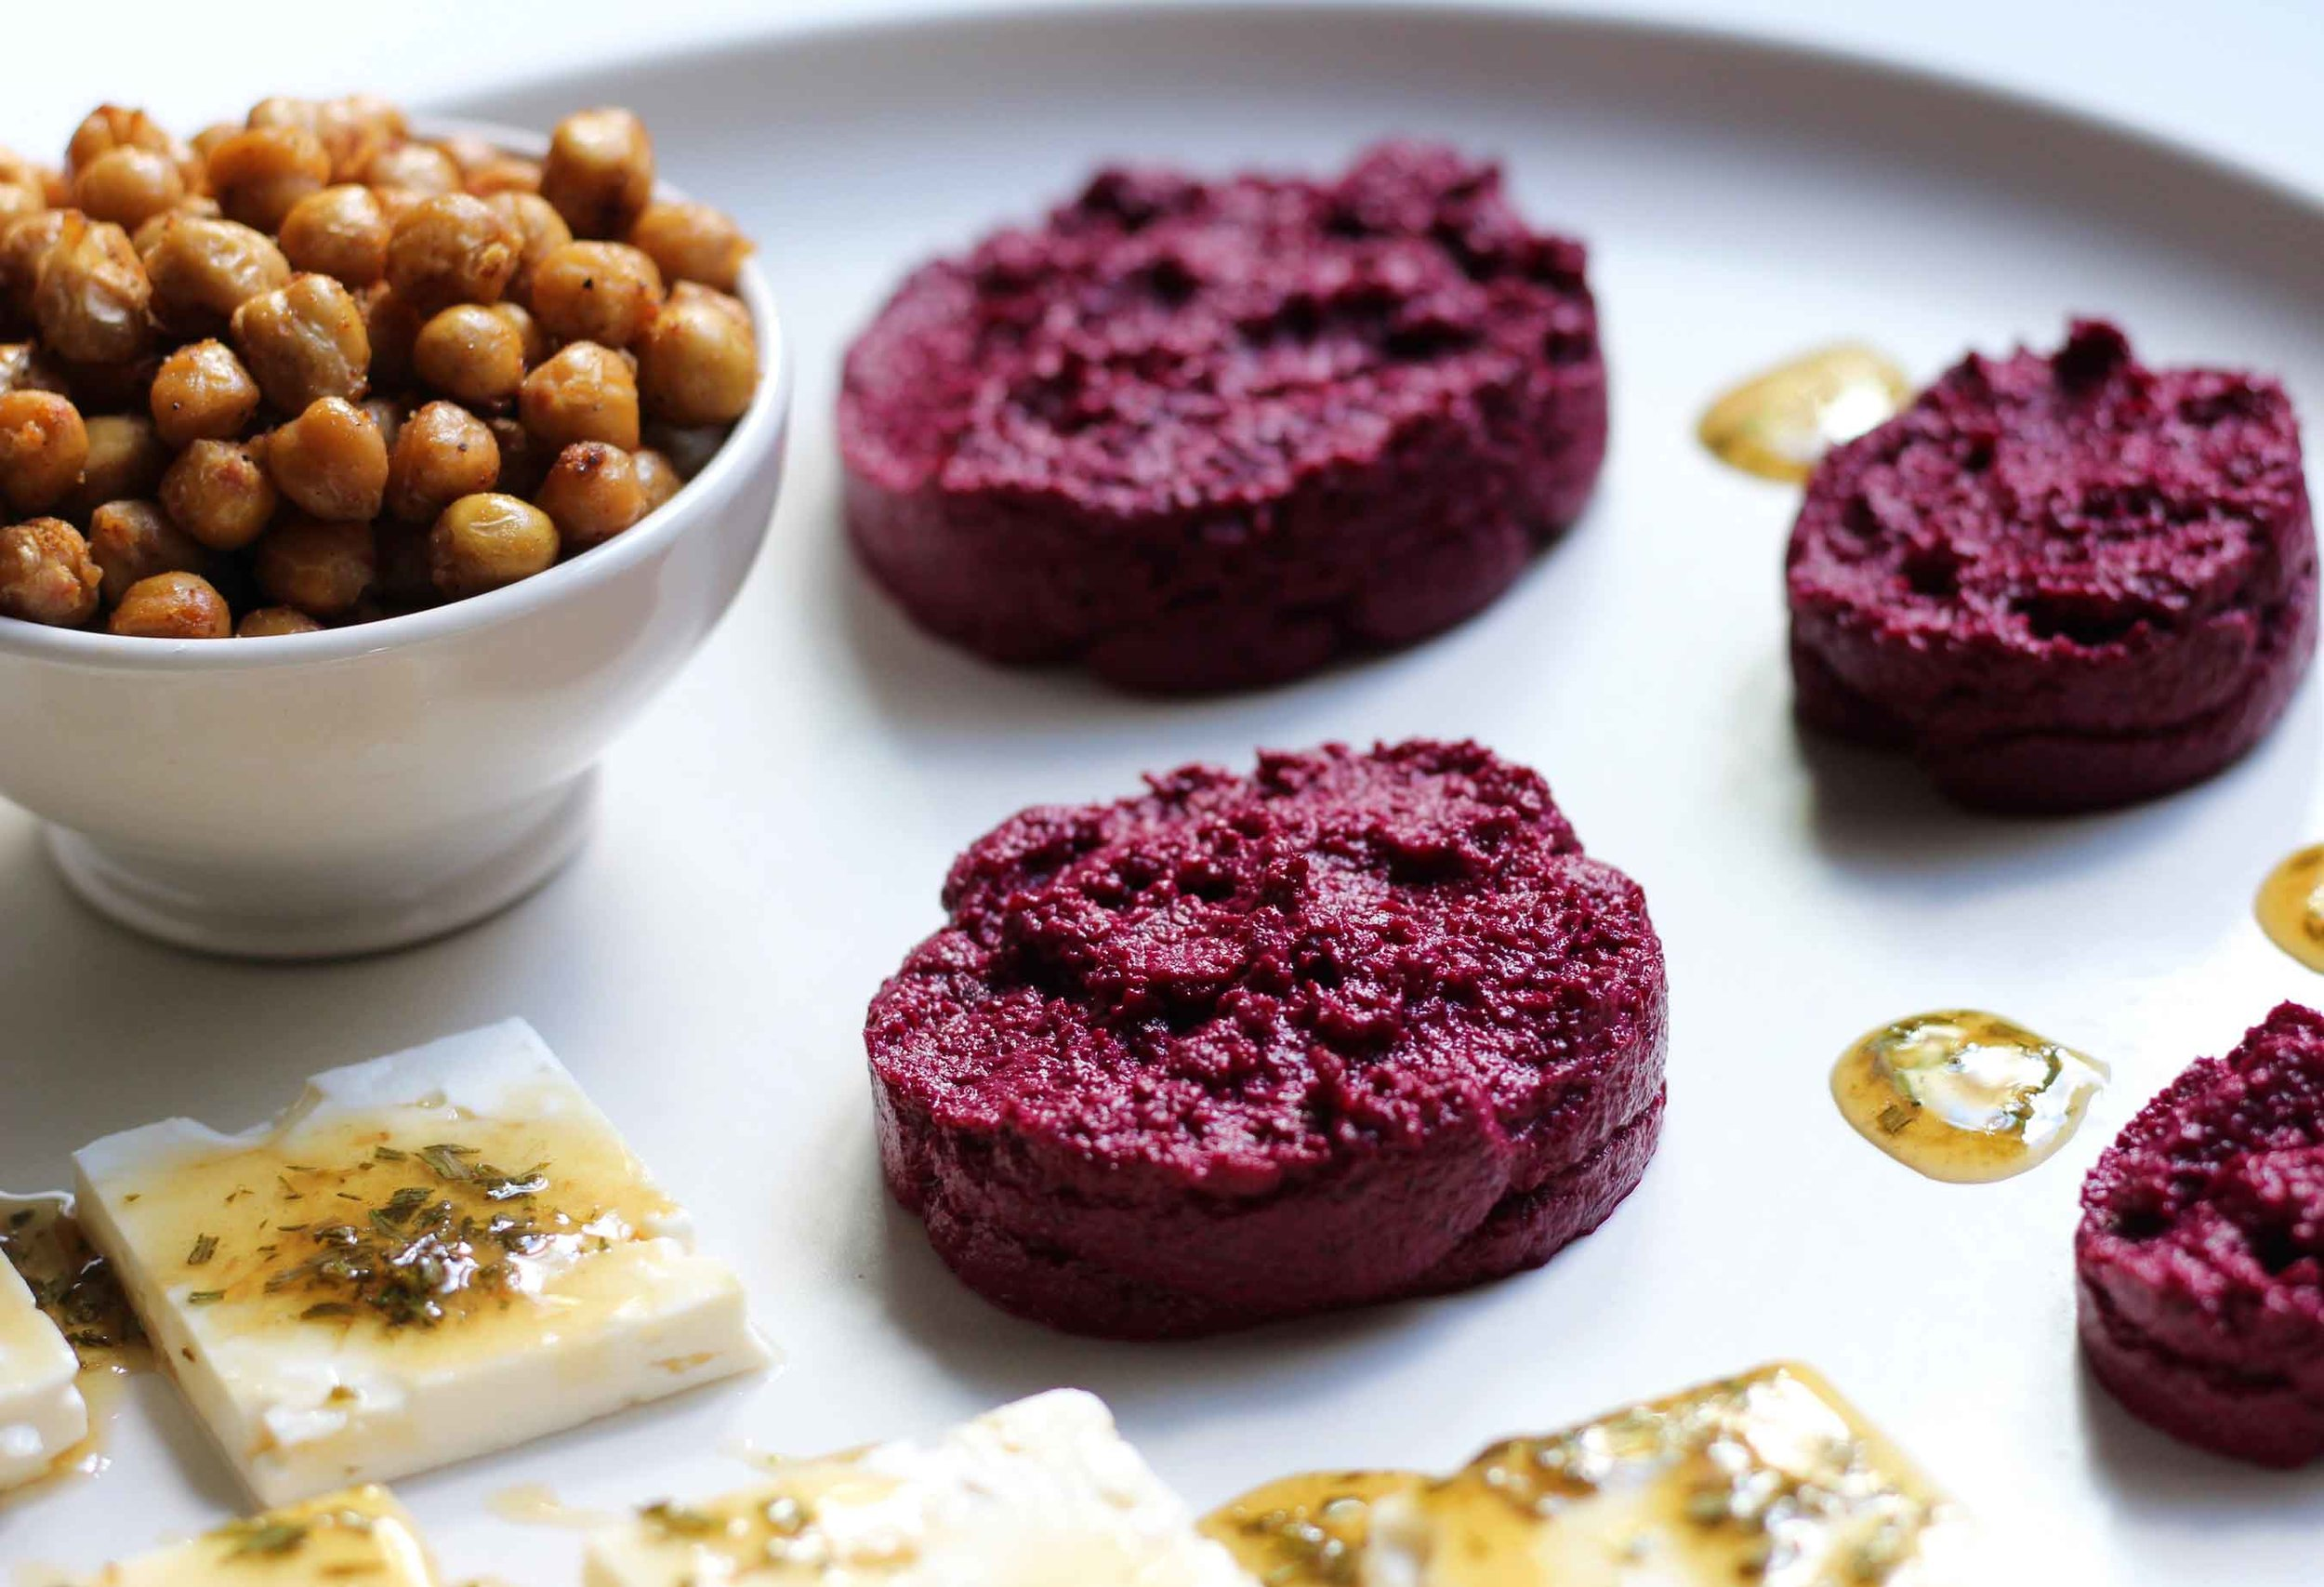 beet hummus on mezze plate | recipe at threadandwhisk.com